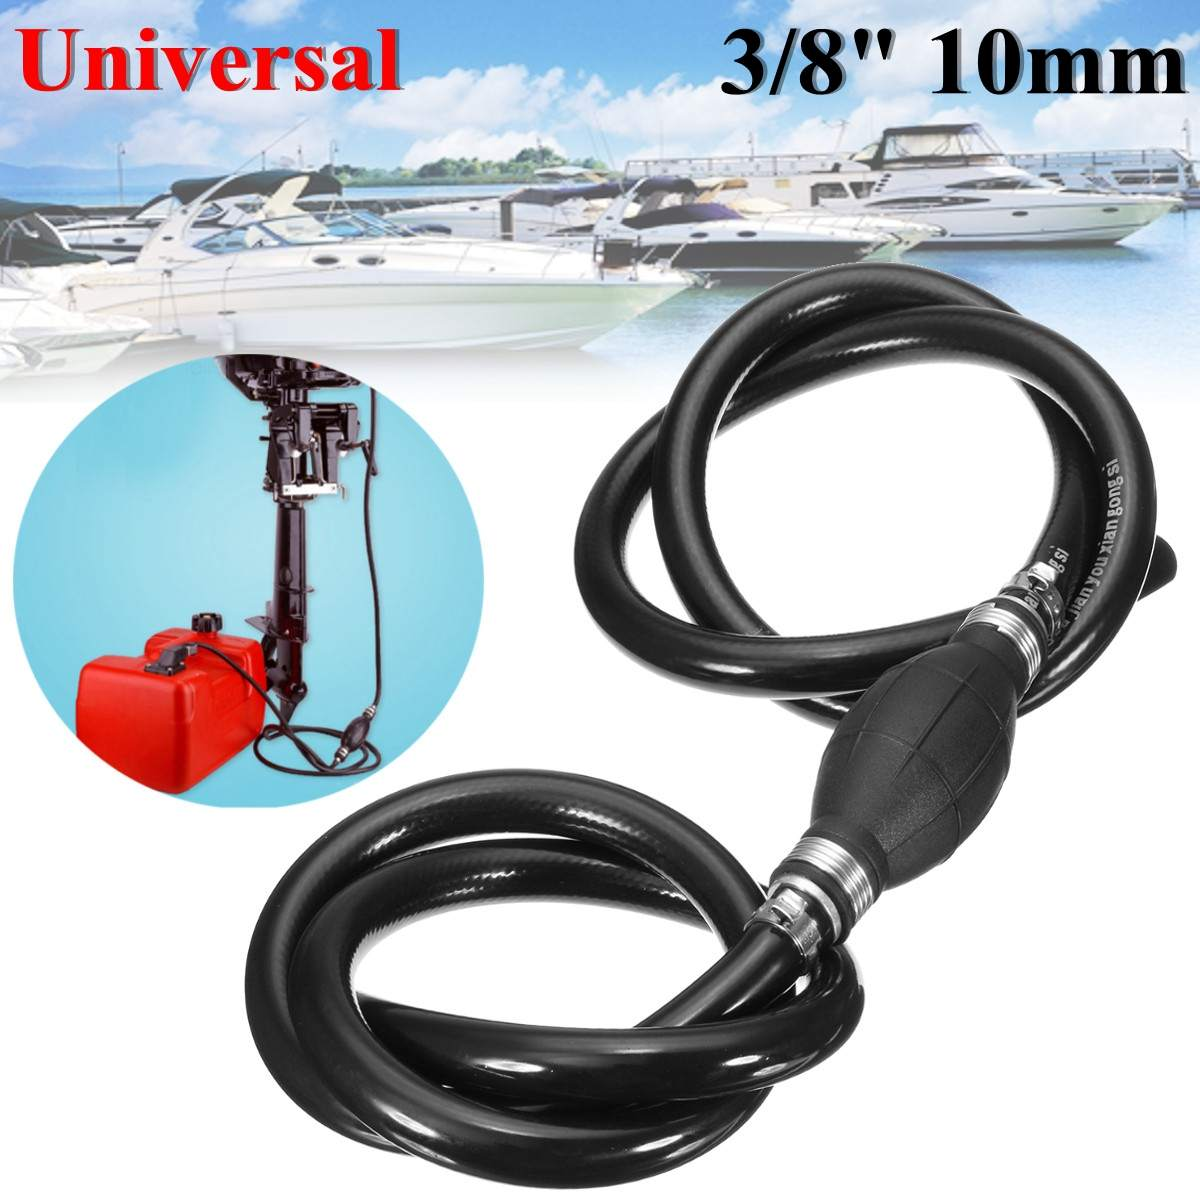 US $9 86 8% OFF 3/8inch Universal 10mm Fuel Line Hose Assembly w/ Primer  Bulb Marine Outboard Boat Motor-in Oil Suction Pump from Automobiles &